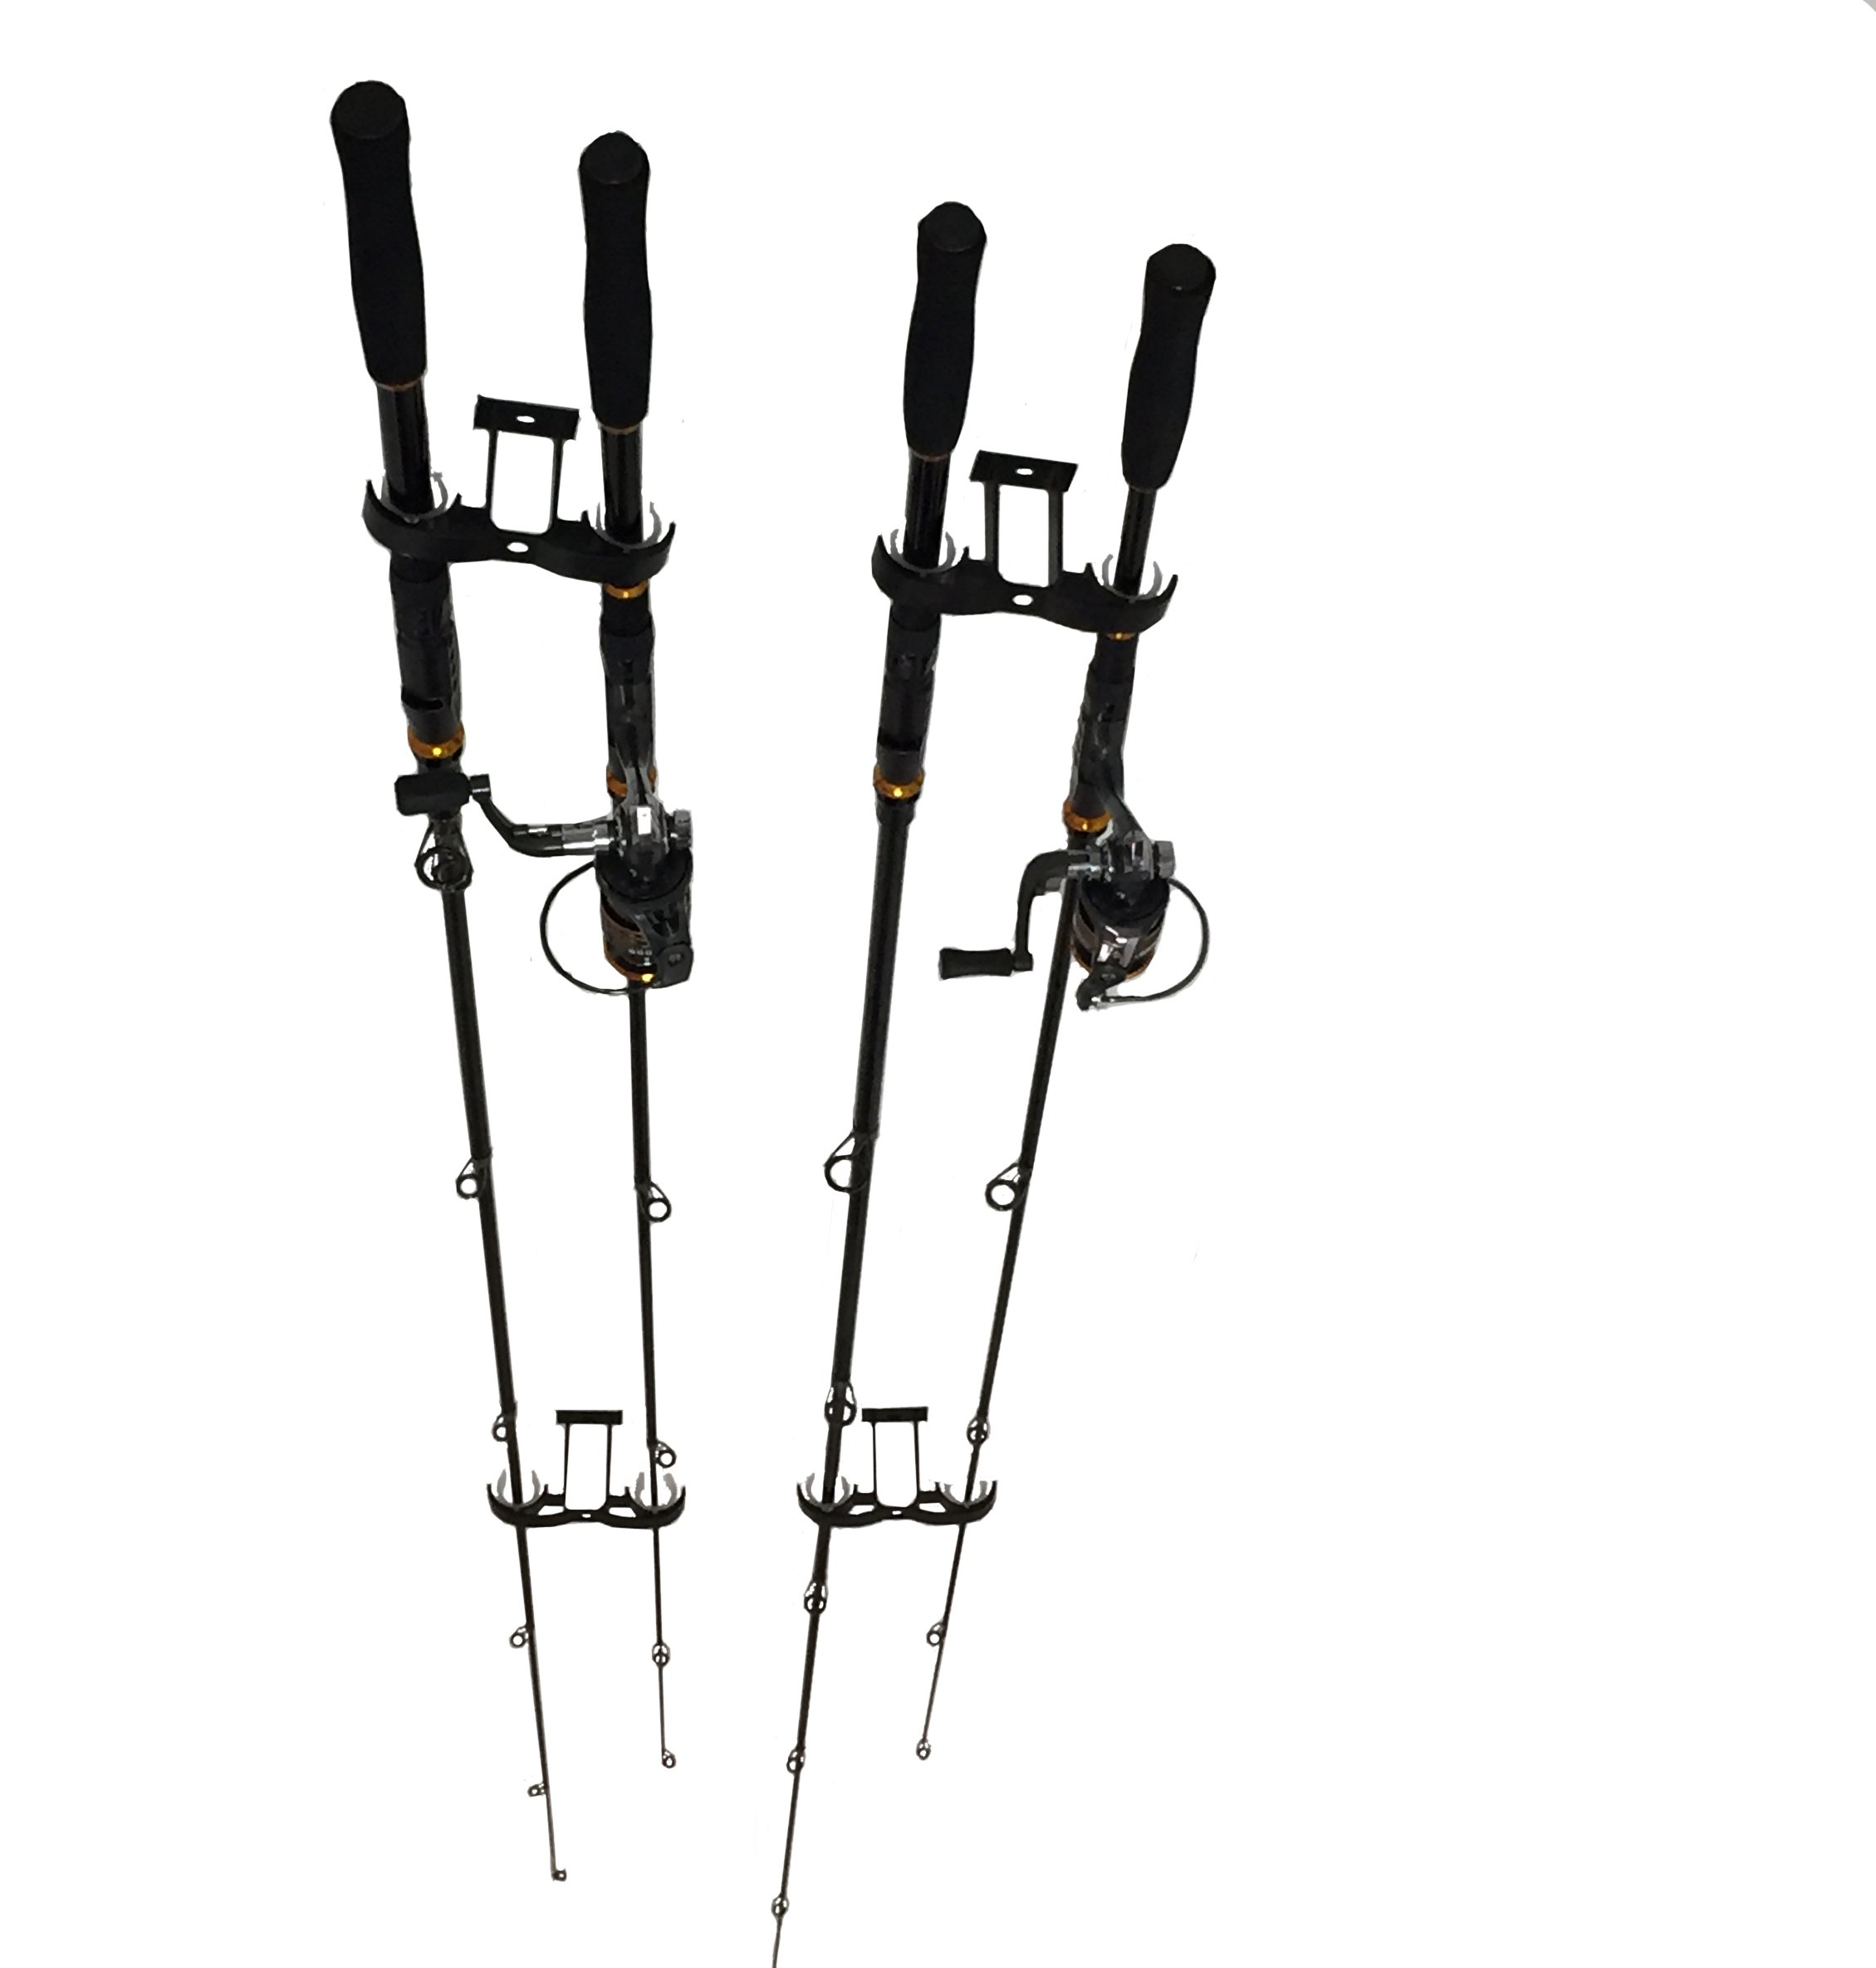 LEOSPORT Overhead 4-Rod Fishing Rod Rack